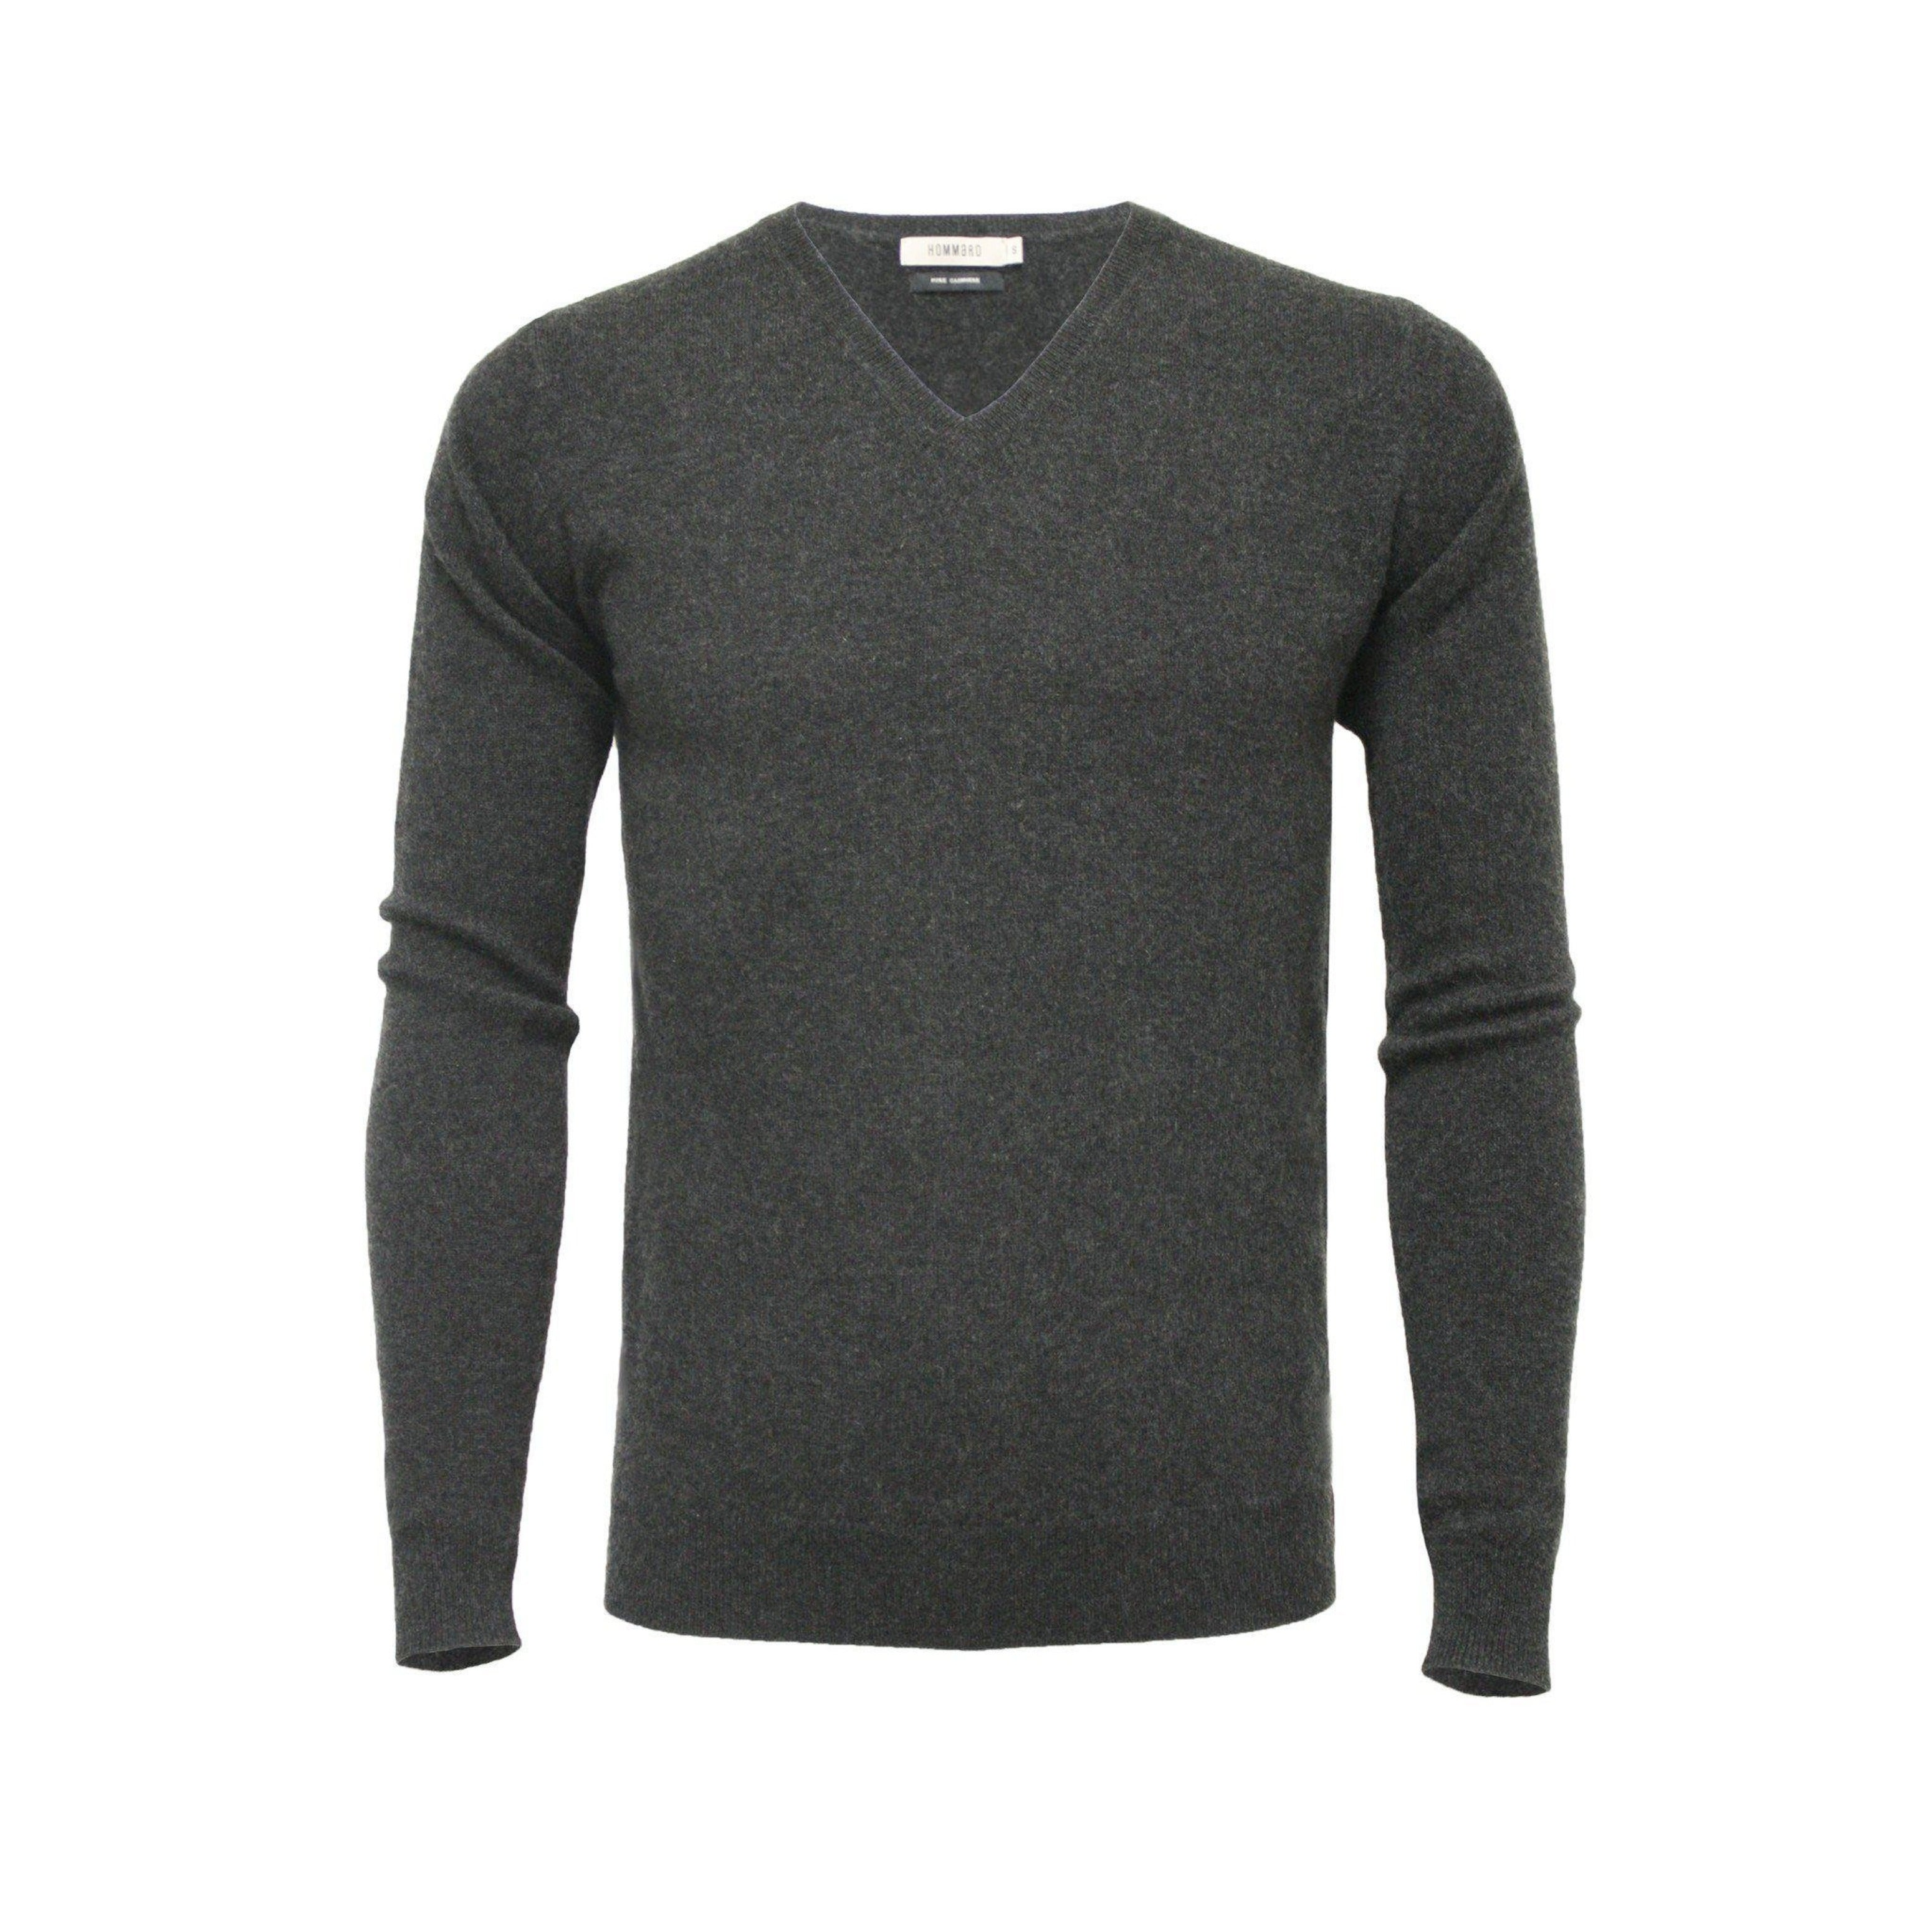 Cashmere V Neck Sweater Charcoal